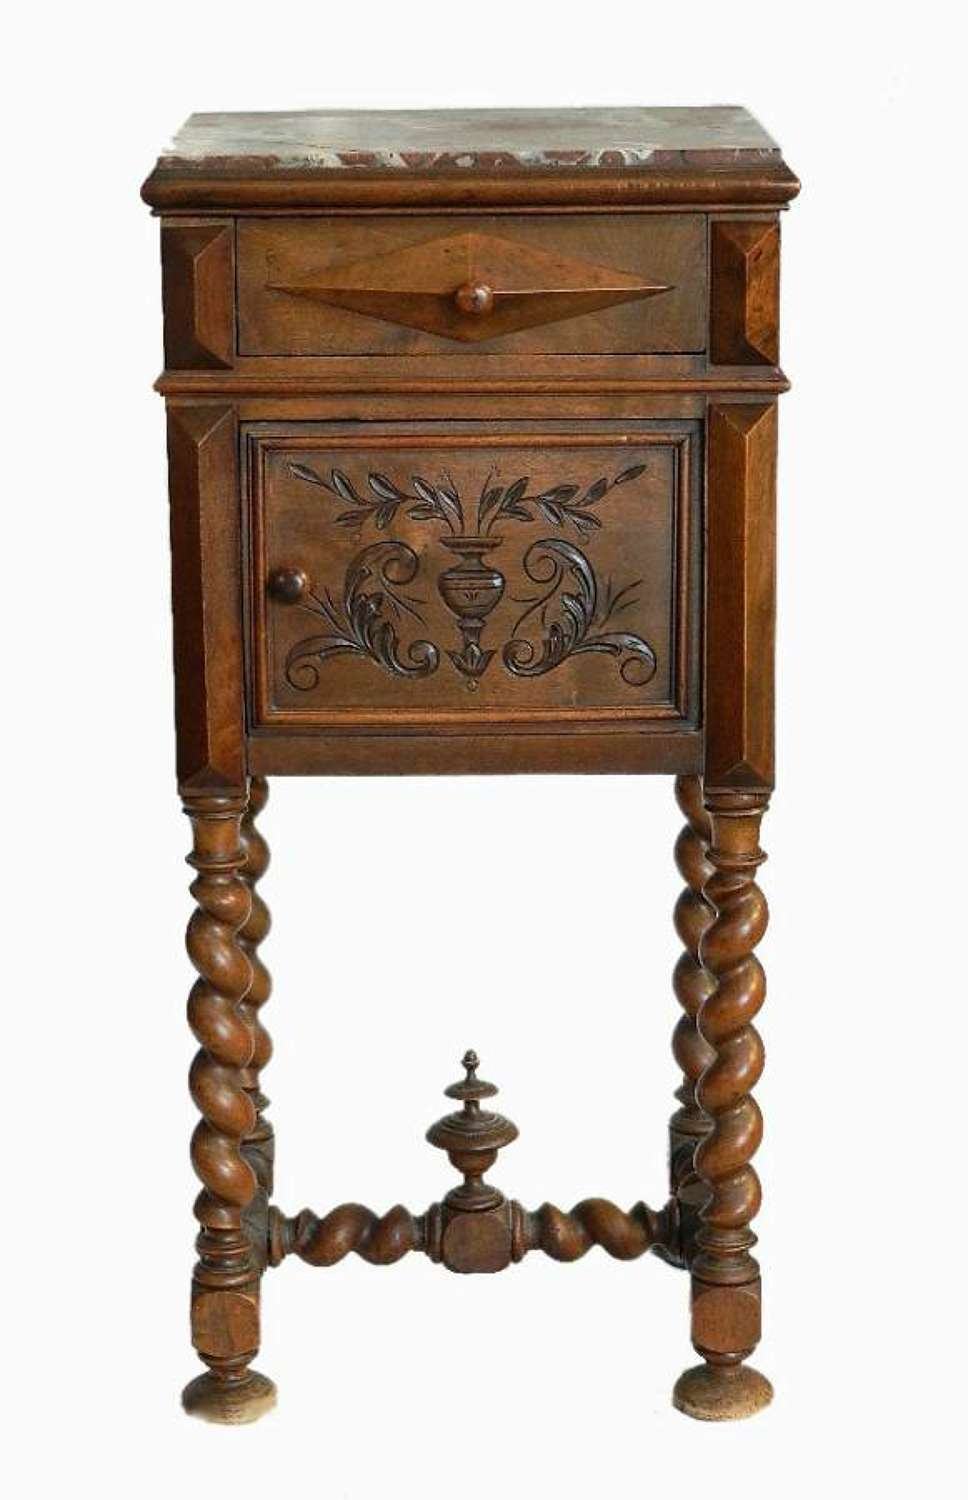 C19 French Bedside Table Nightstand Louis XIII rev